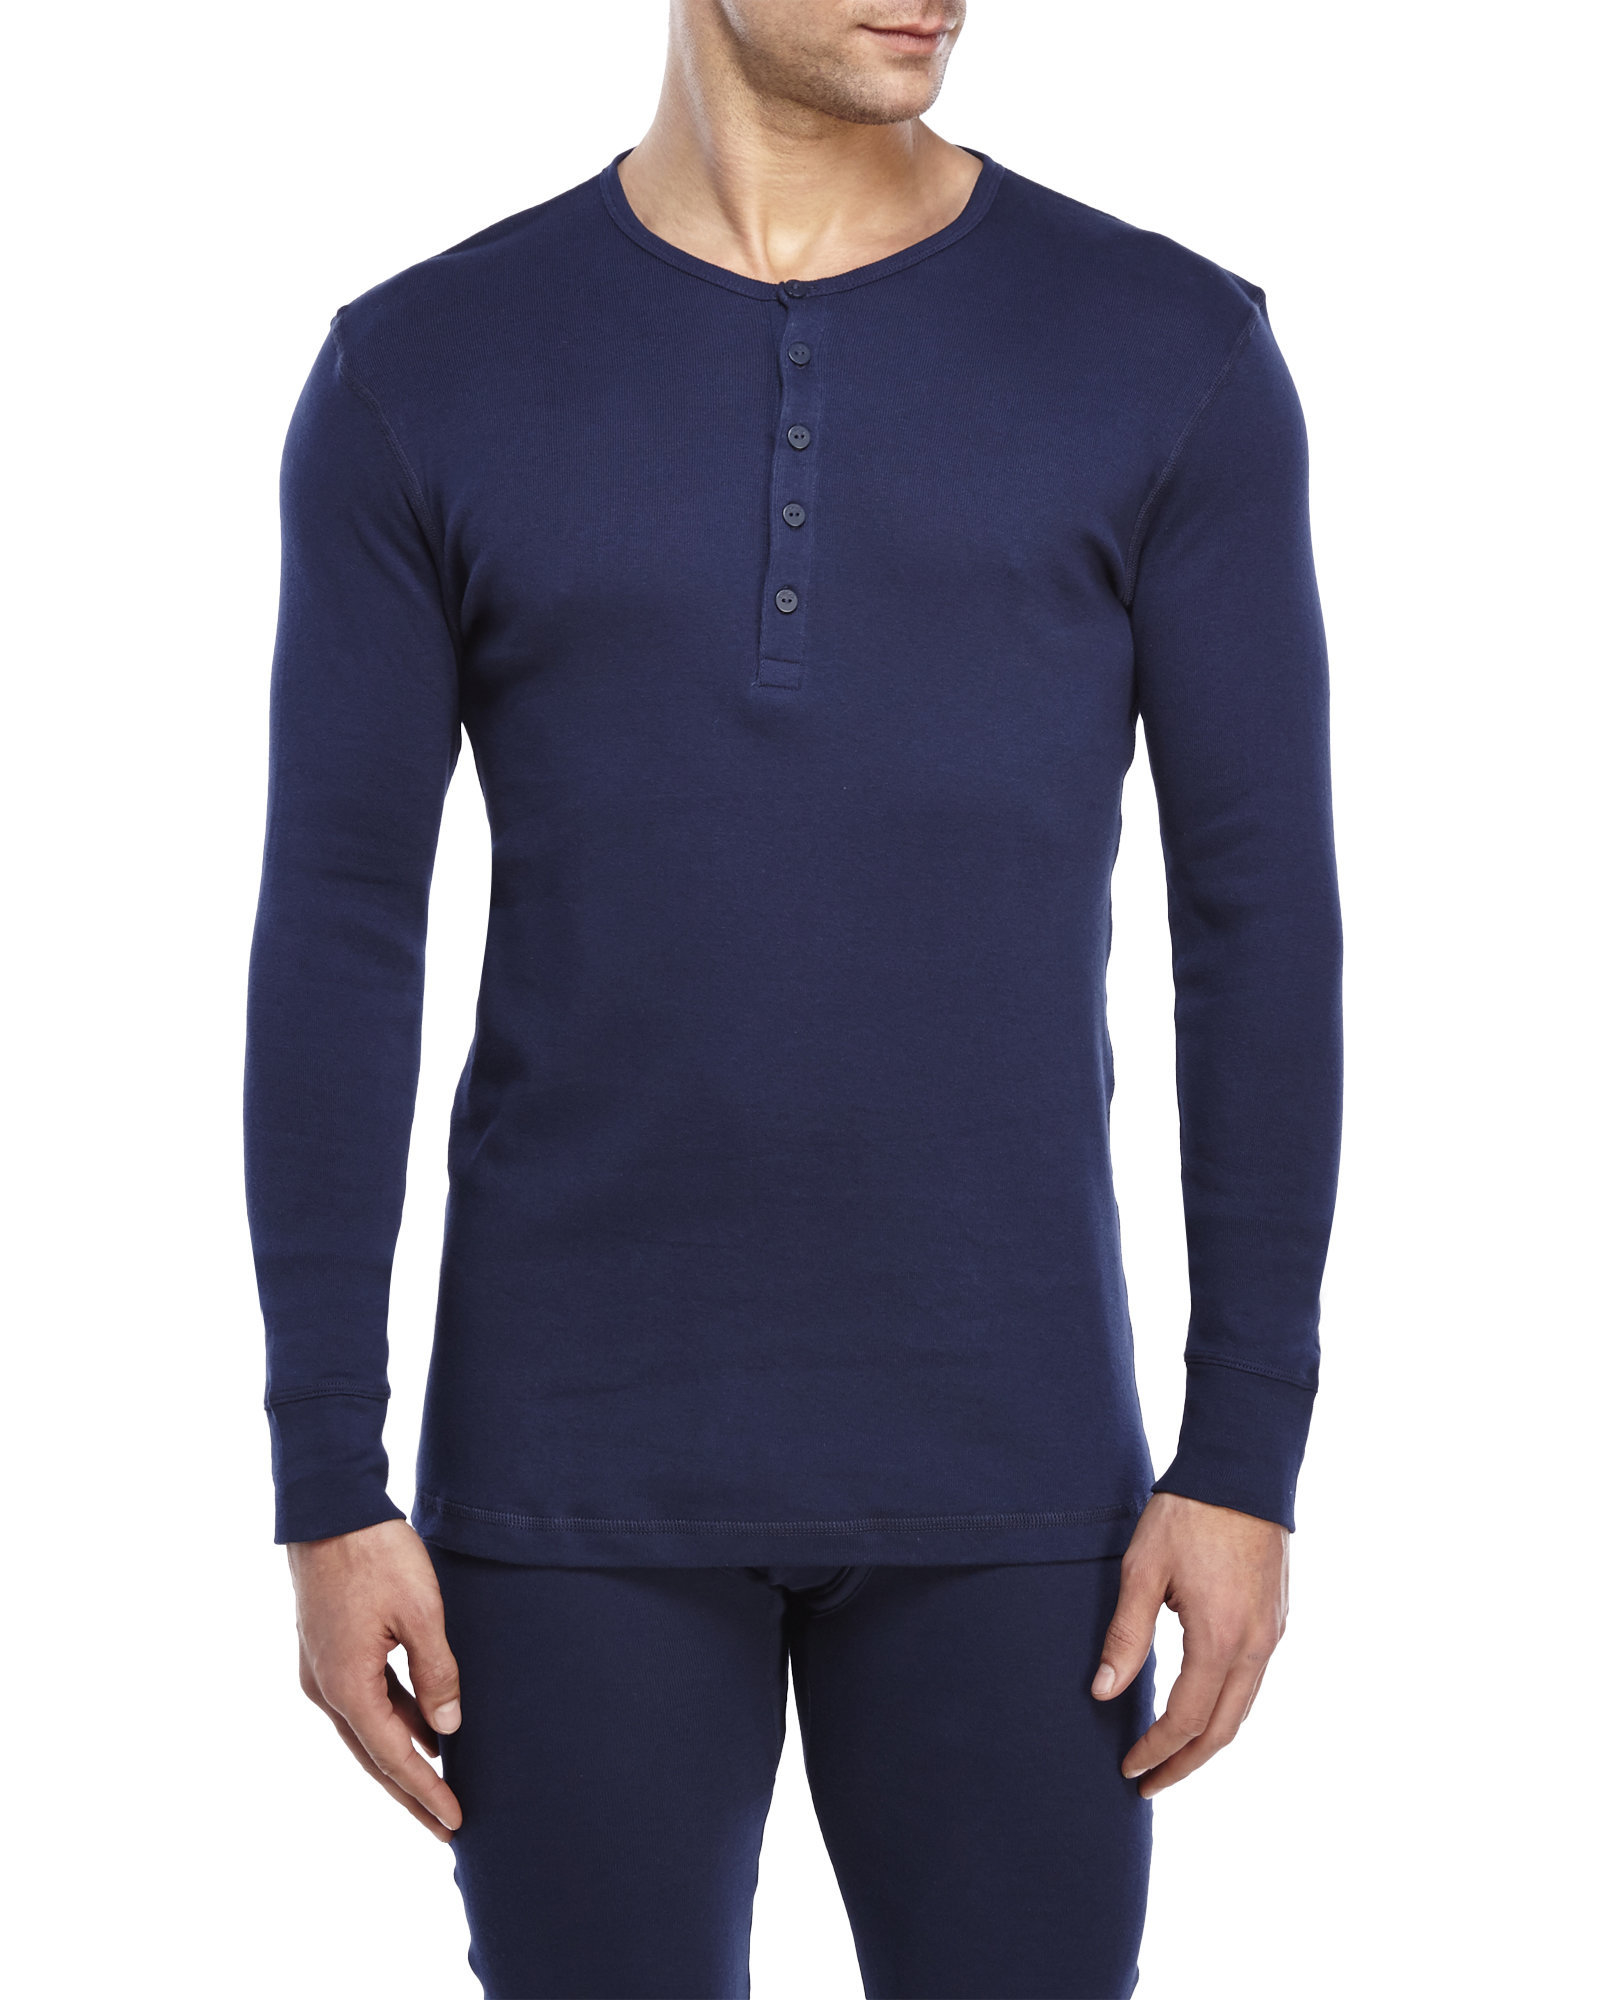 4c95ab01 2xist Thermal Long Sleeve Henley in Blue for Men - Lyst